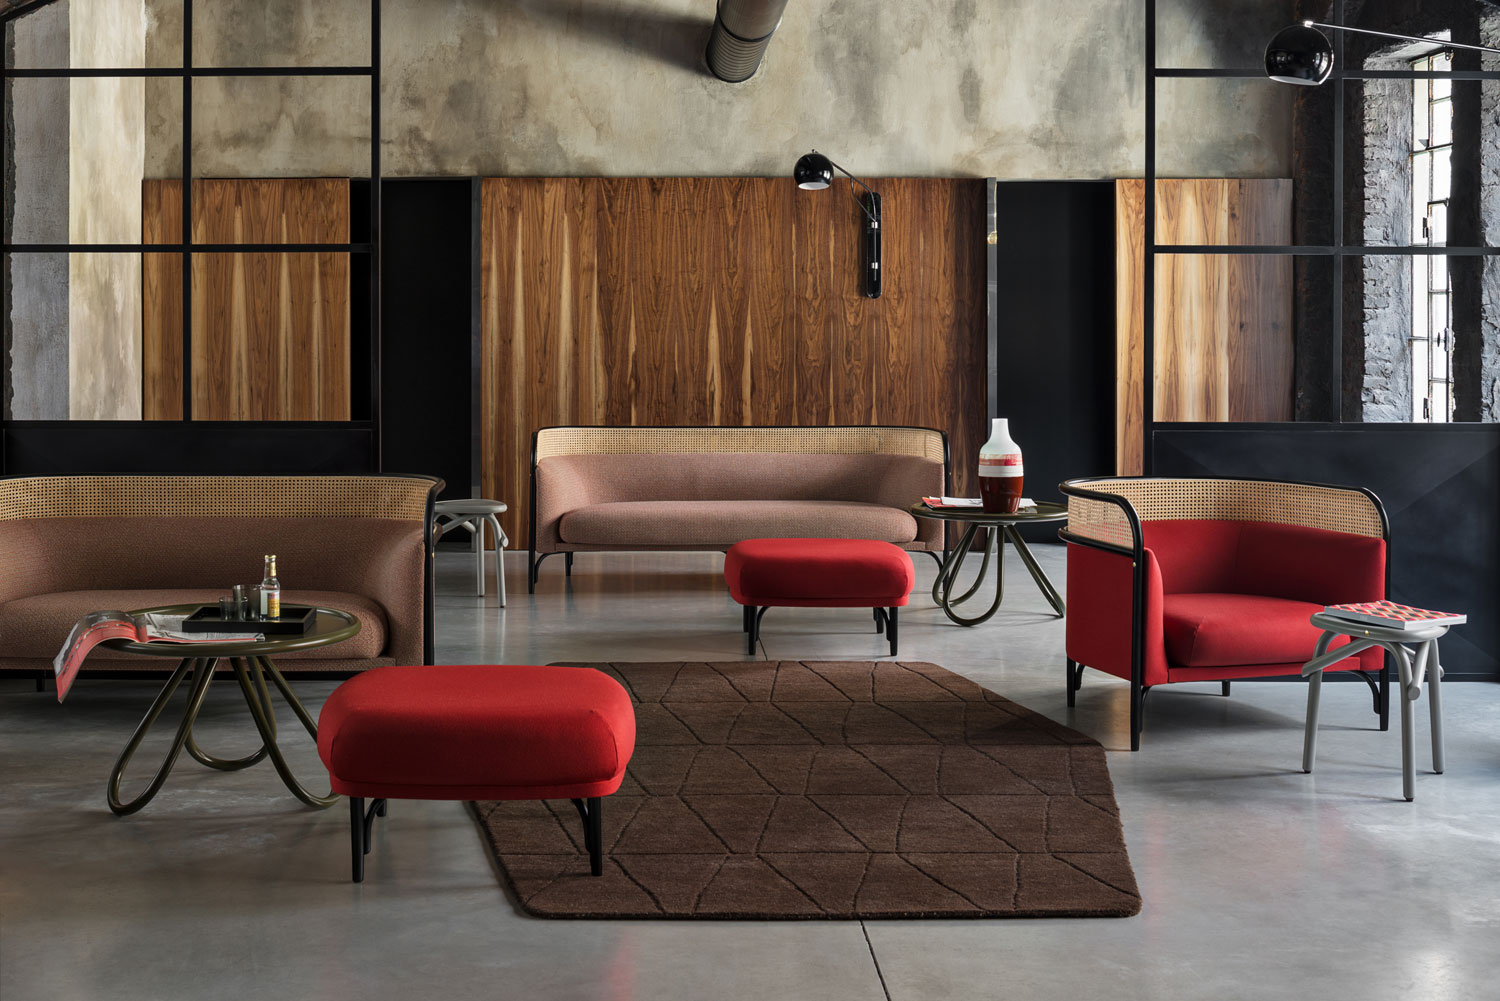 Gebruder Thonet Vienna, TARGA Sofa Lounge & Pouf Design by GamFratesi | Yellowtrace